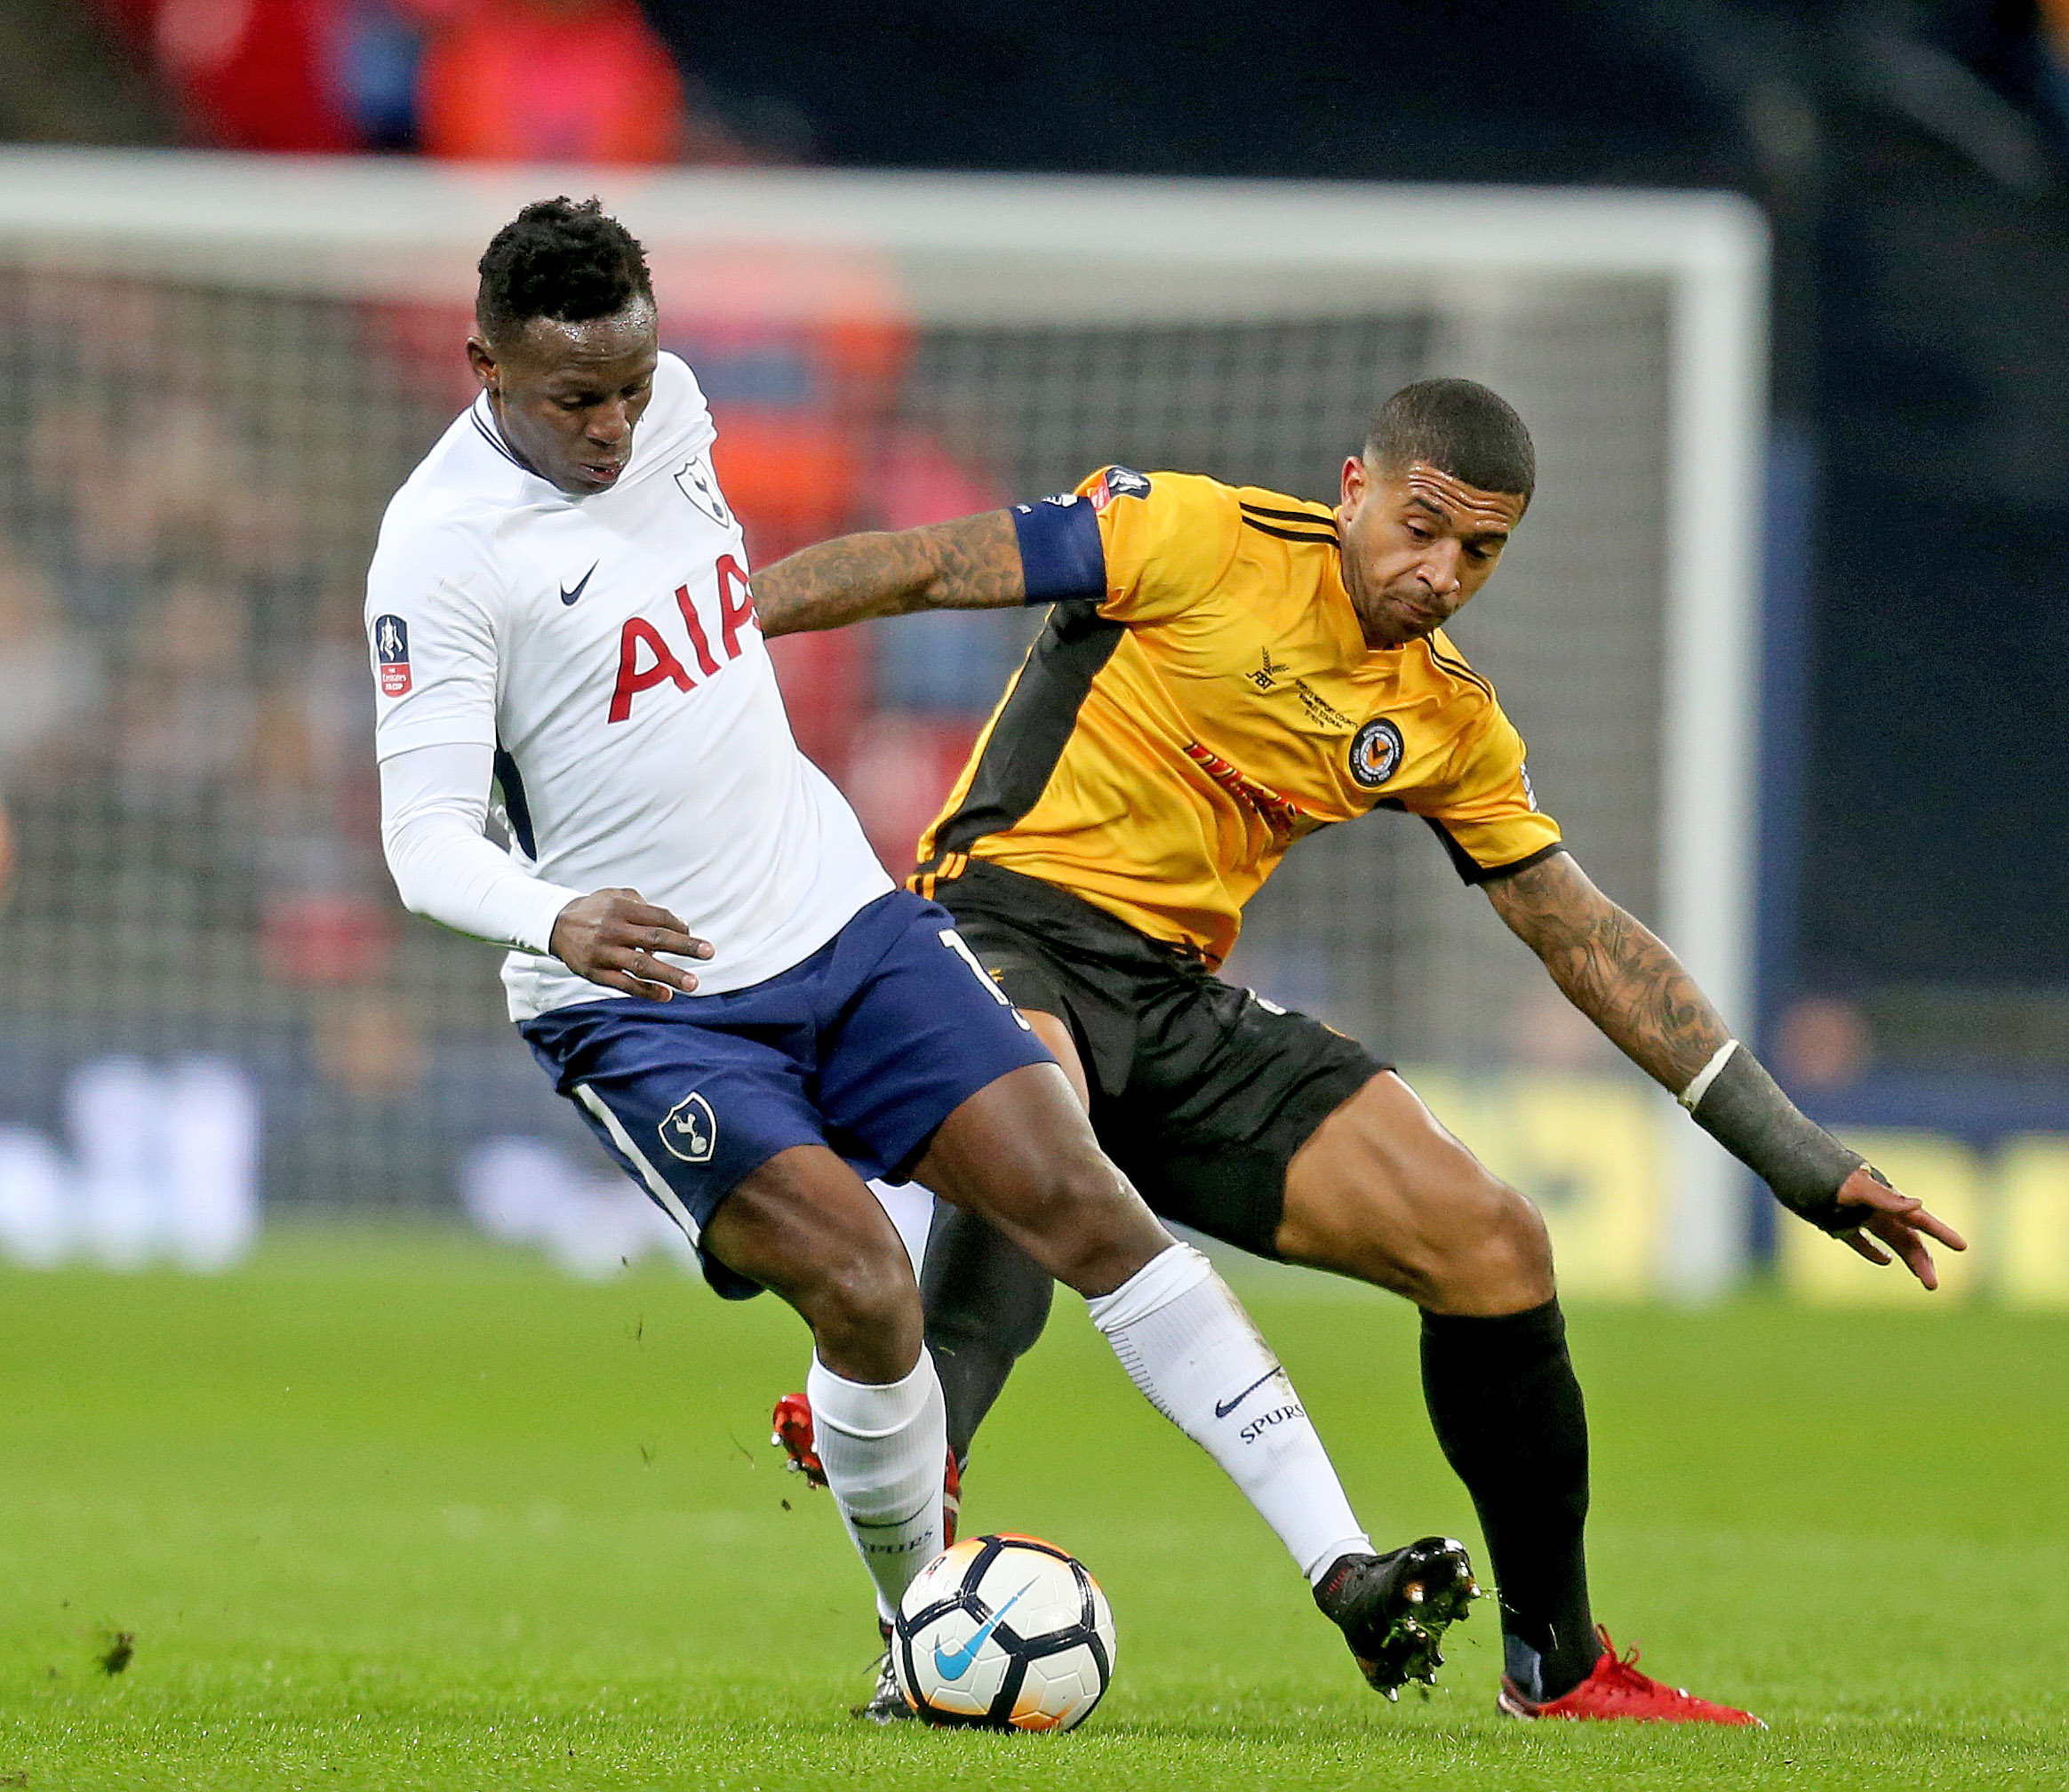 REFOCUS: Joss Labadie challenges Victor Wanyama for the ball at Wembley. Picture: Huw Evans Agency